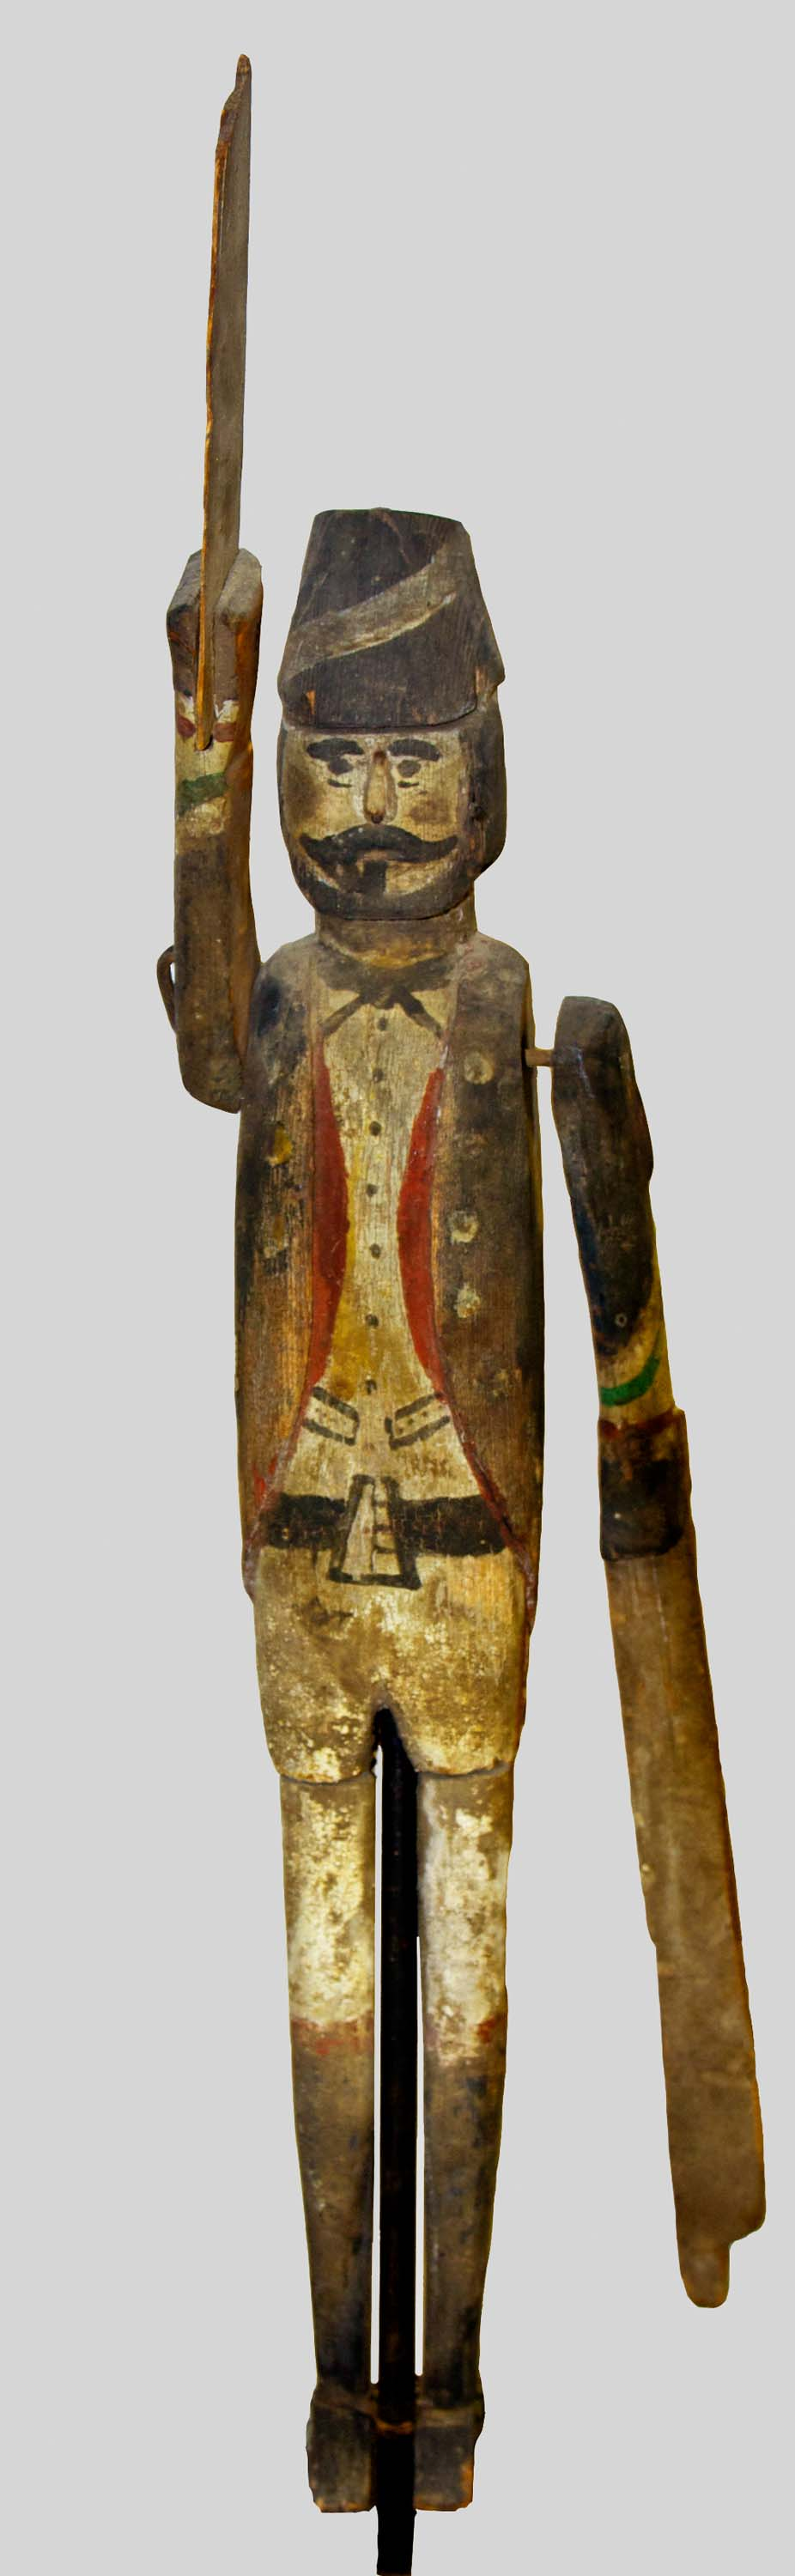 Anonymous, Cape Cod,  Whirligig Figure (soldier),  c. 1850, carved wood with original paint, 22h x 4w x 4d in.